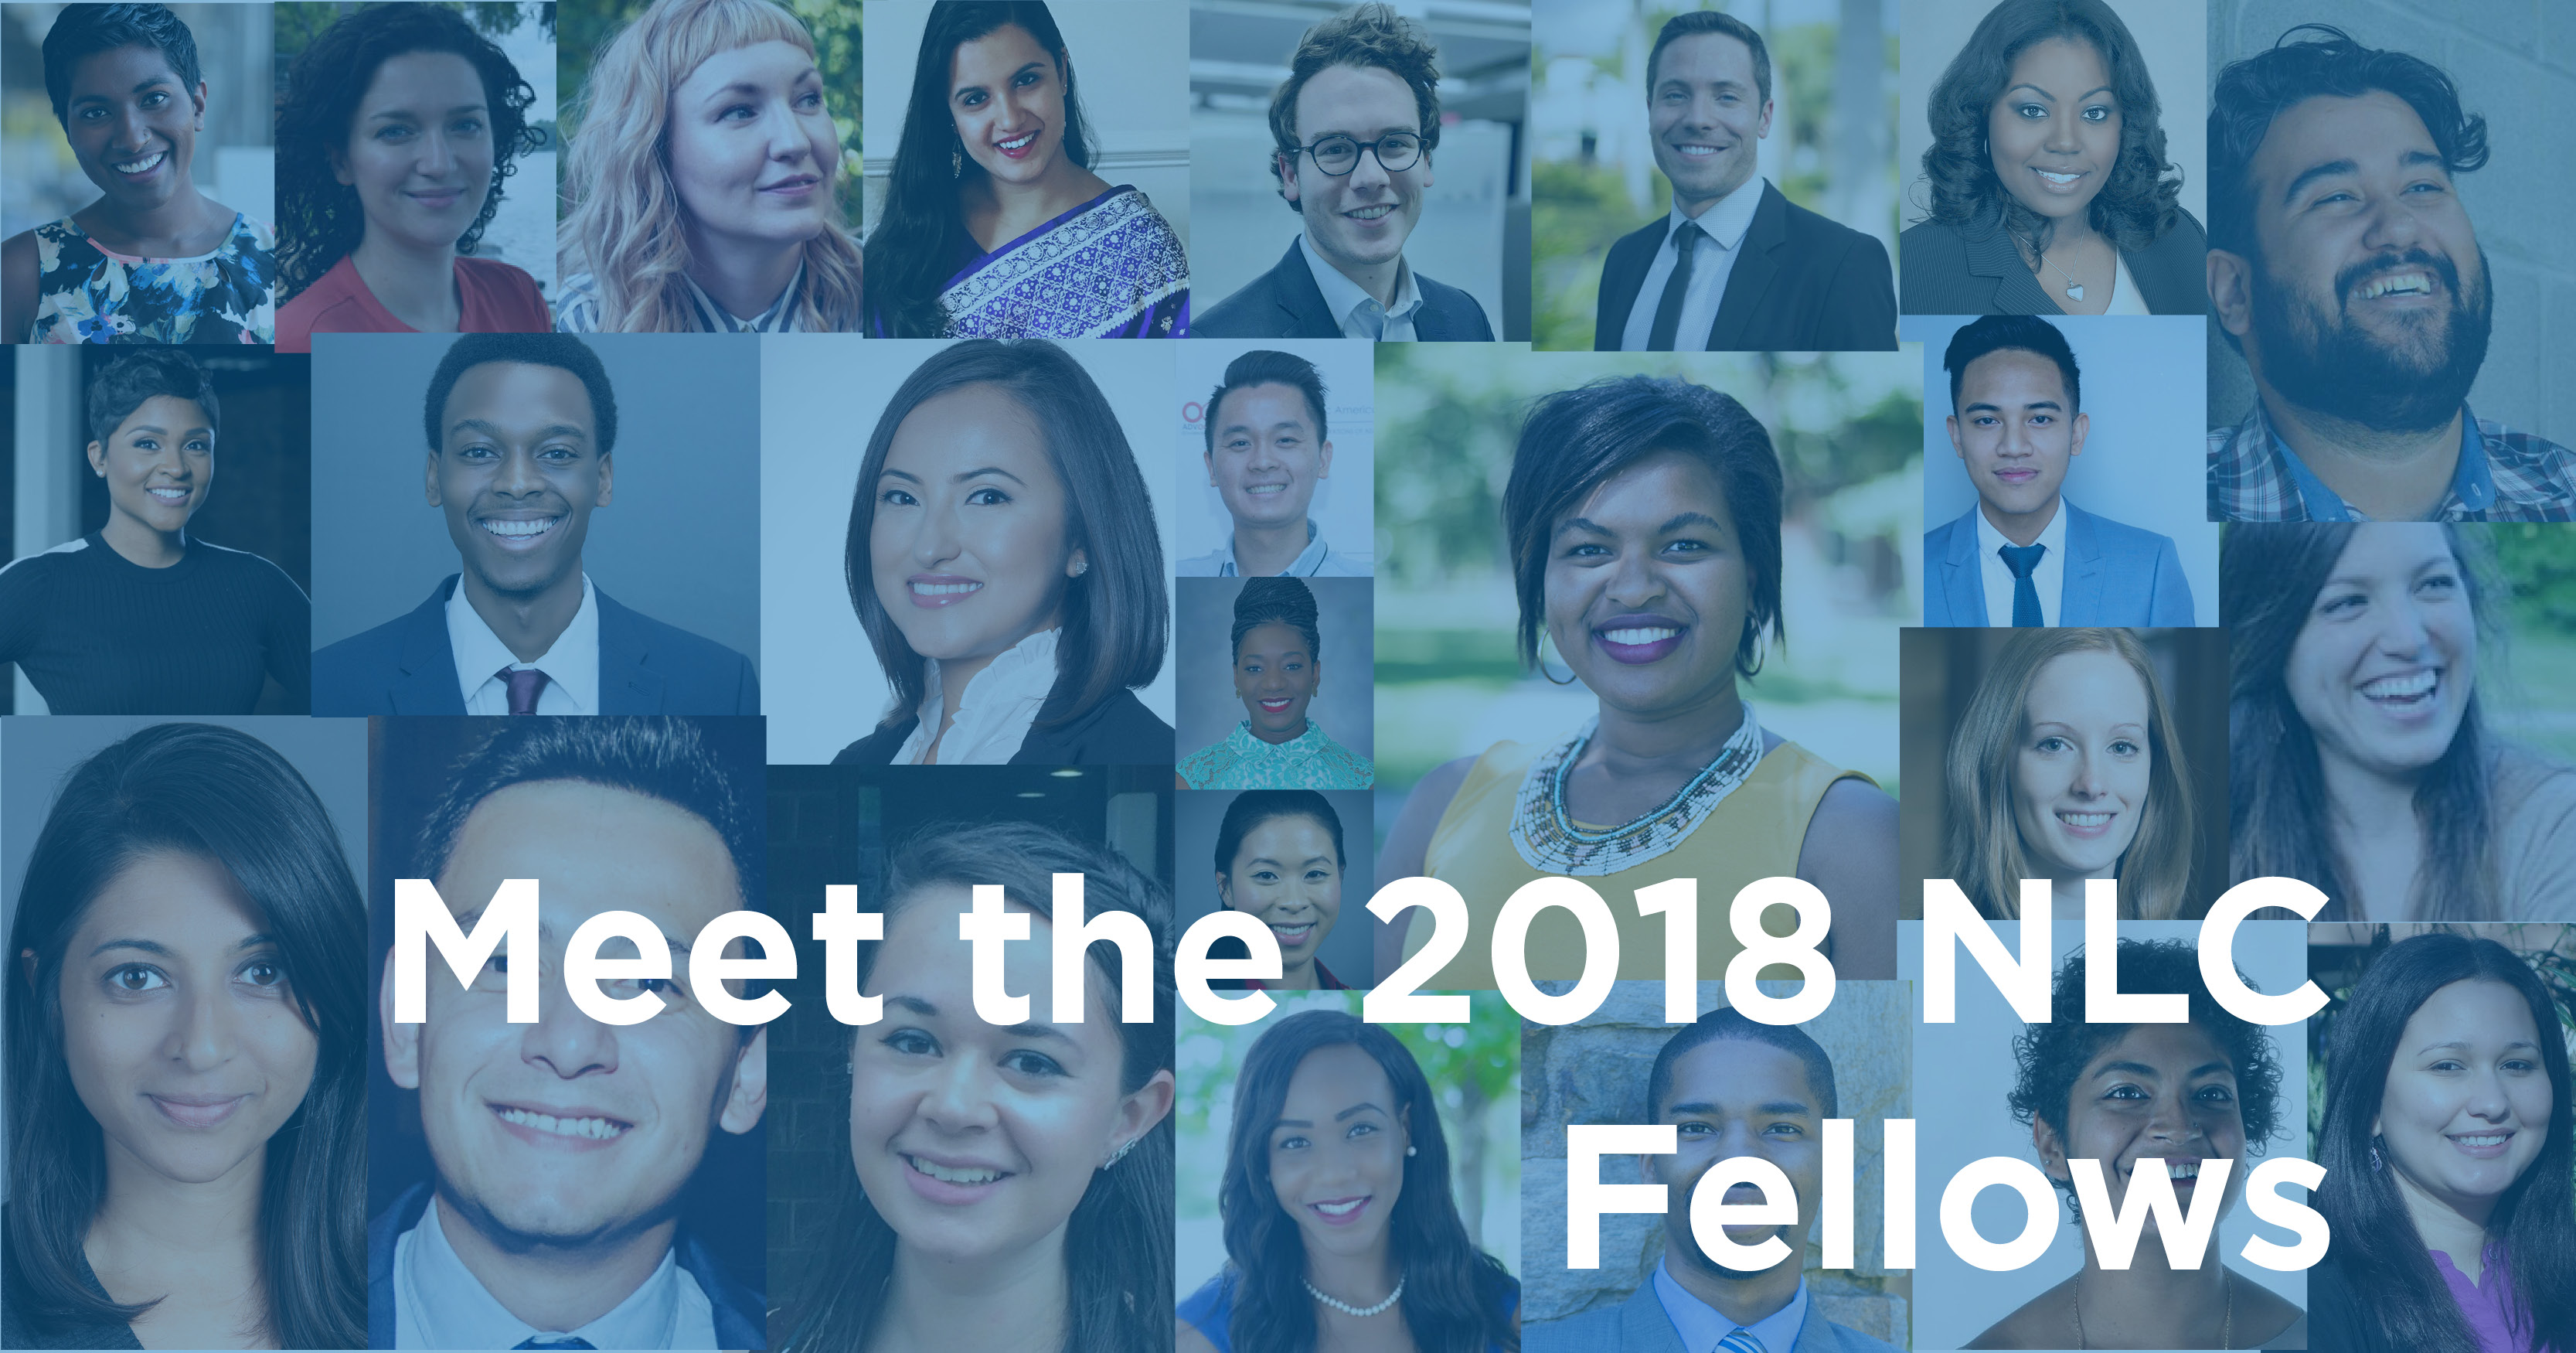 Meet_the_2018_Fellows_-_FB.jpg